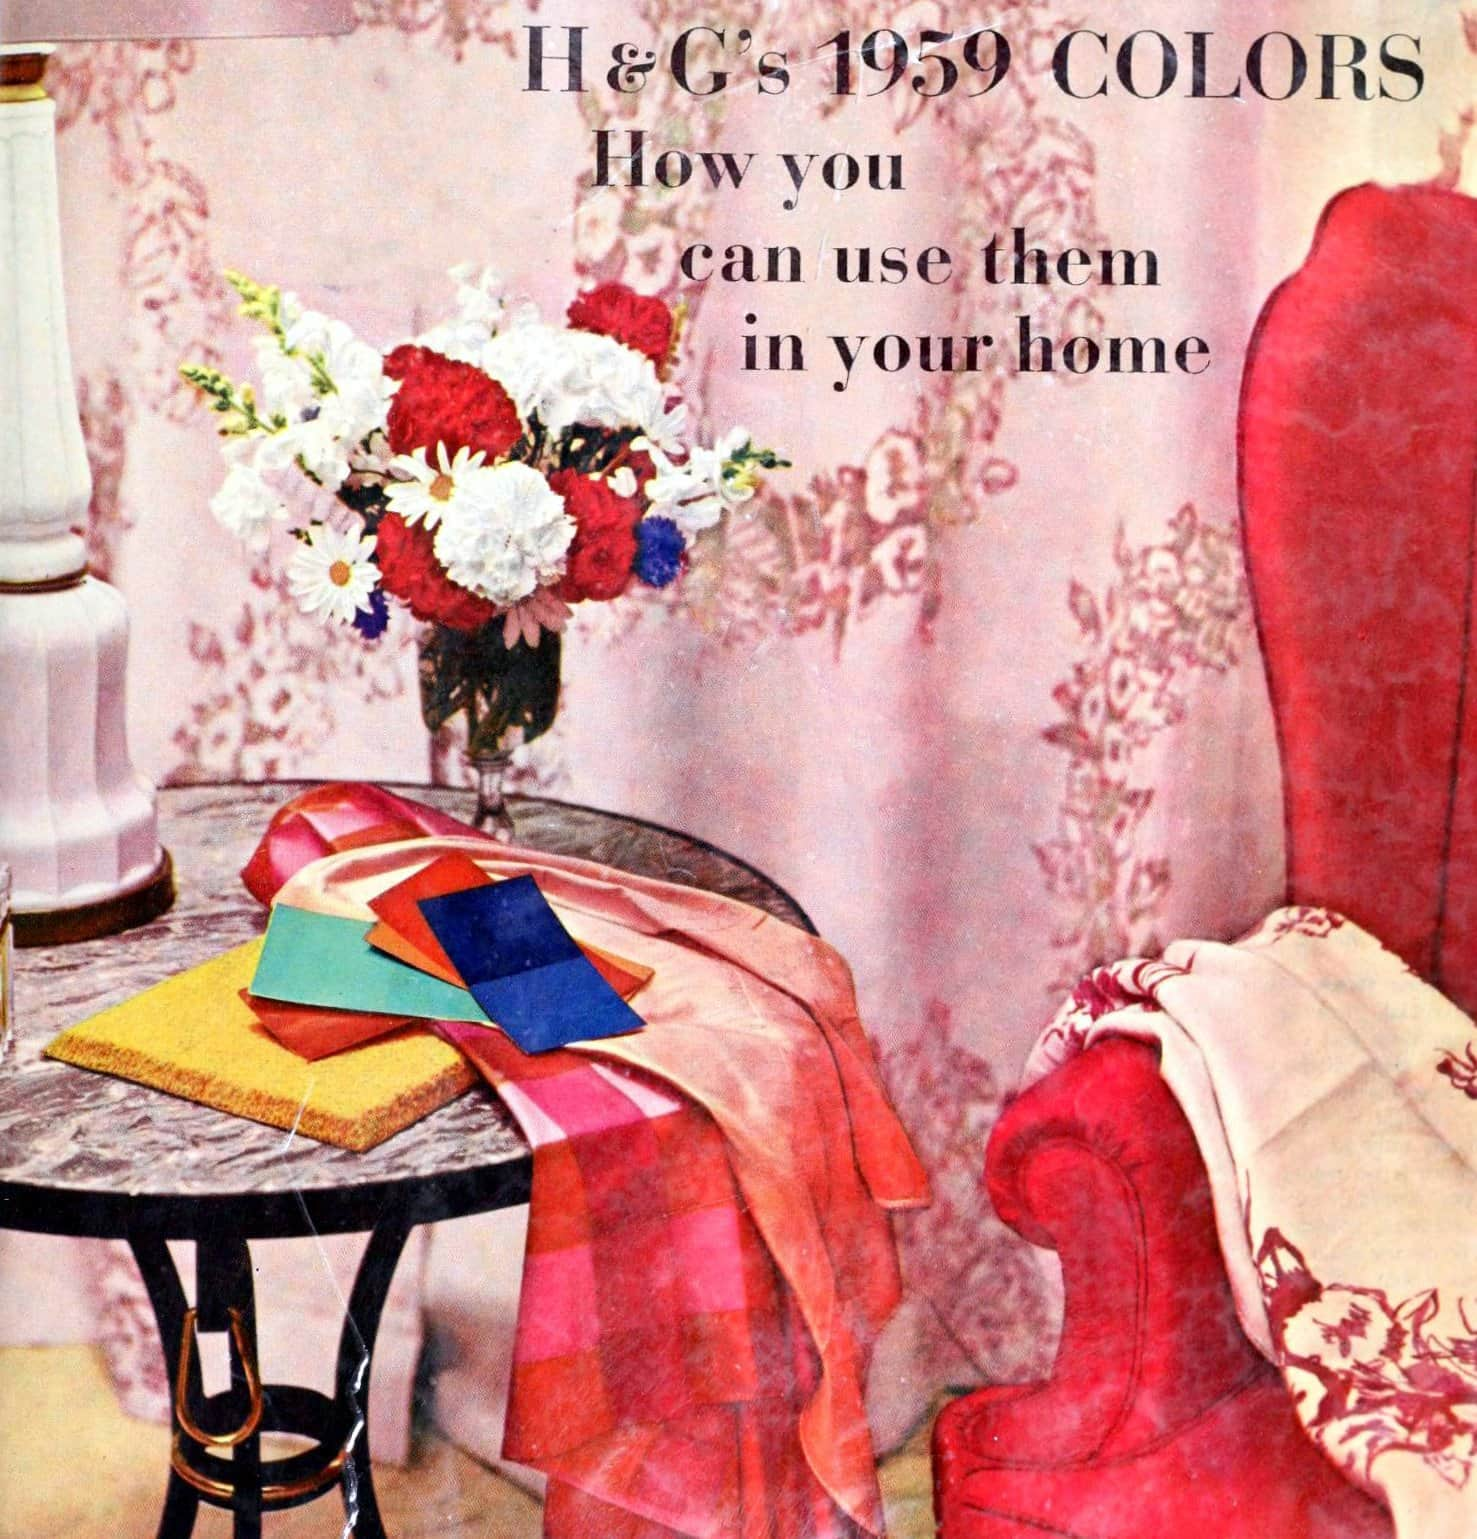 16 vintage House Beautiful home color schemes from 1959